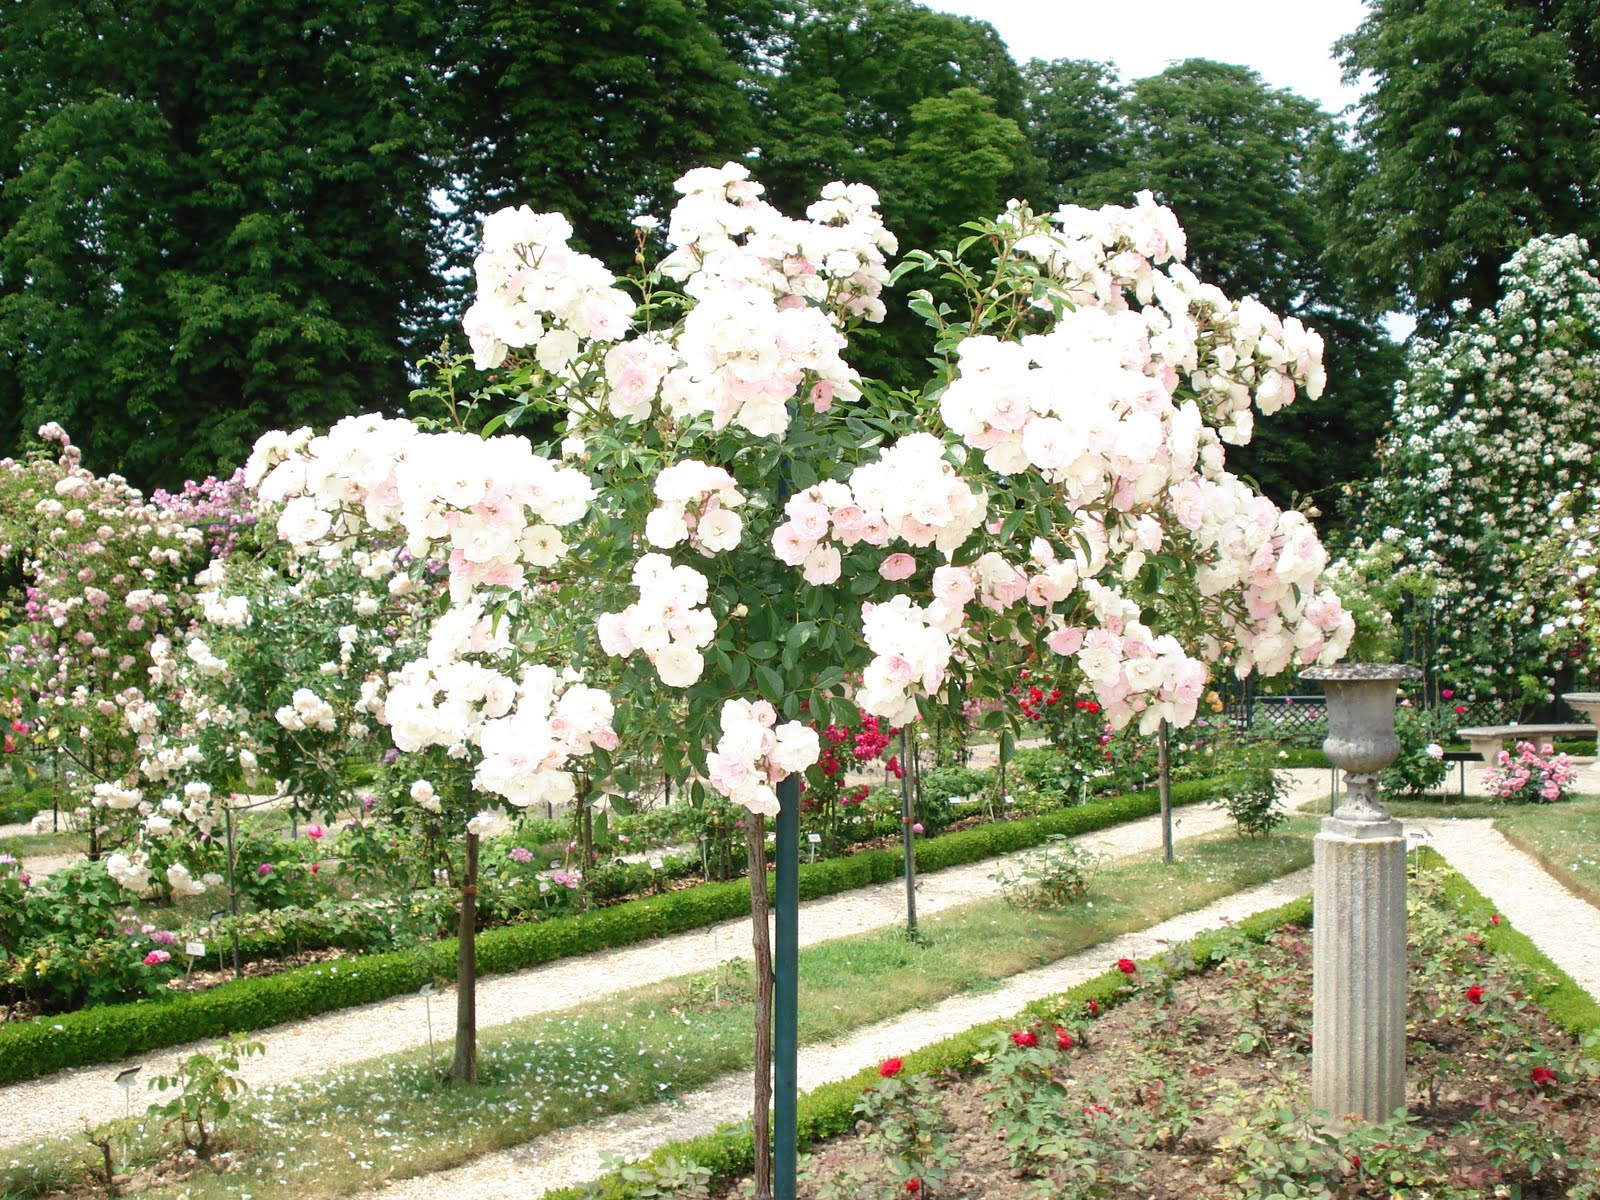 french beauty mark the rose garden at lhay les roses paris - Most Beautiful Rose Gardens In The World